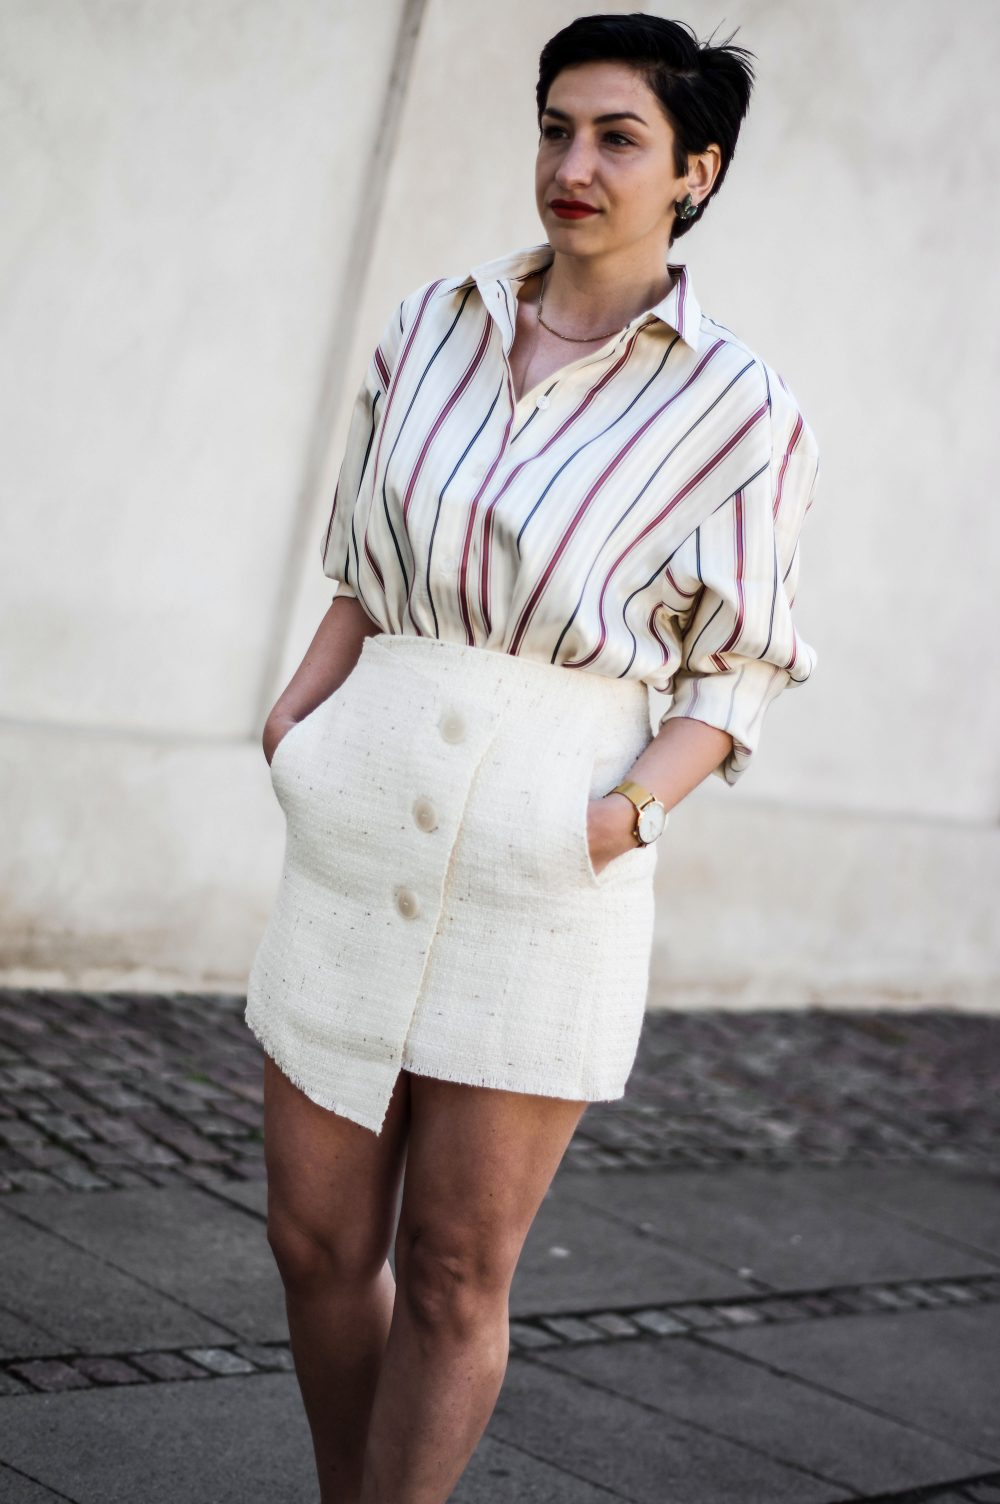 work wear, what to wear at work, professional outfit, white skirt, spring blouse, bussines wear, spring fashion, women fashion, spring - summer style, outfit inspiration for work and spring 2 copy